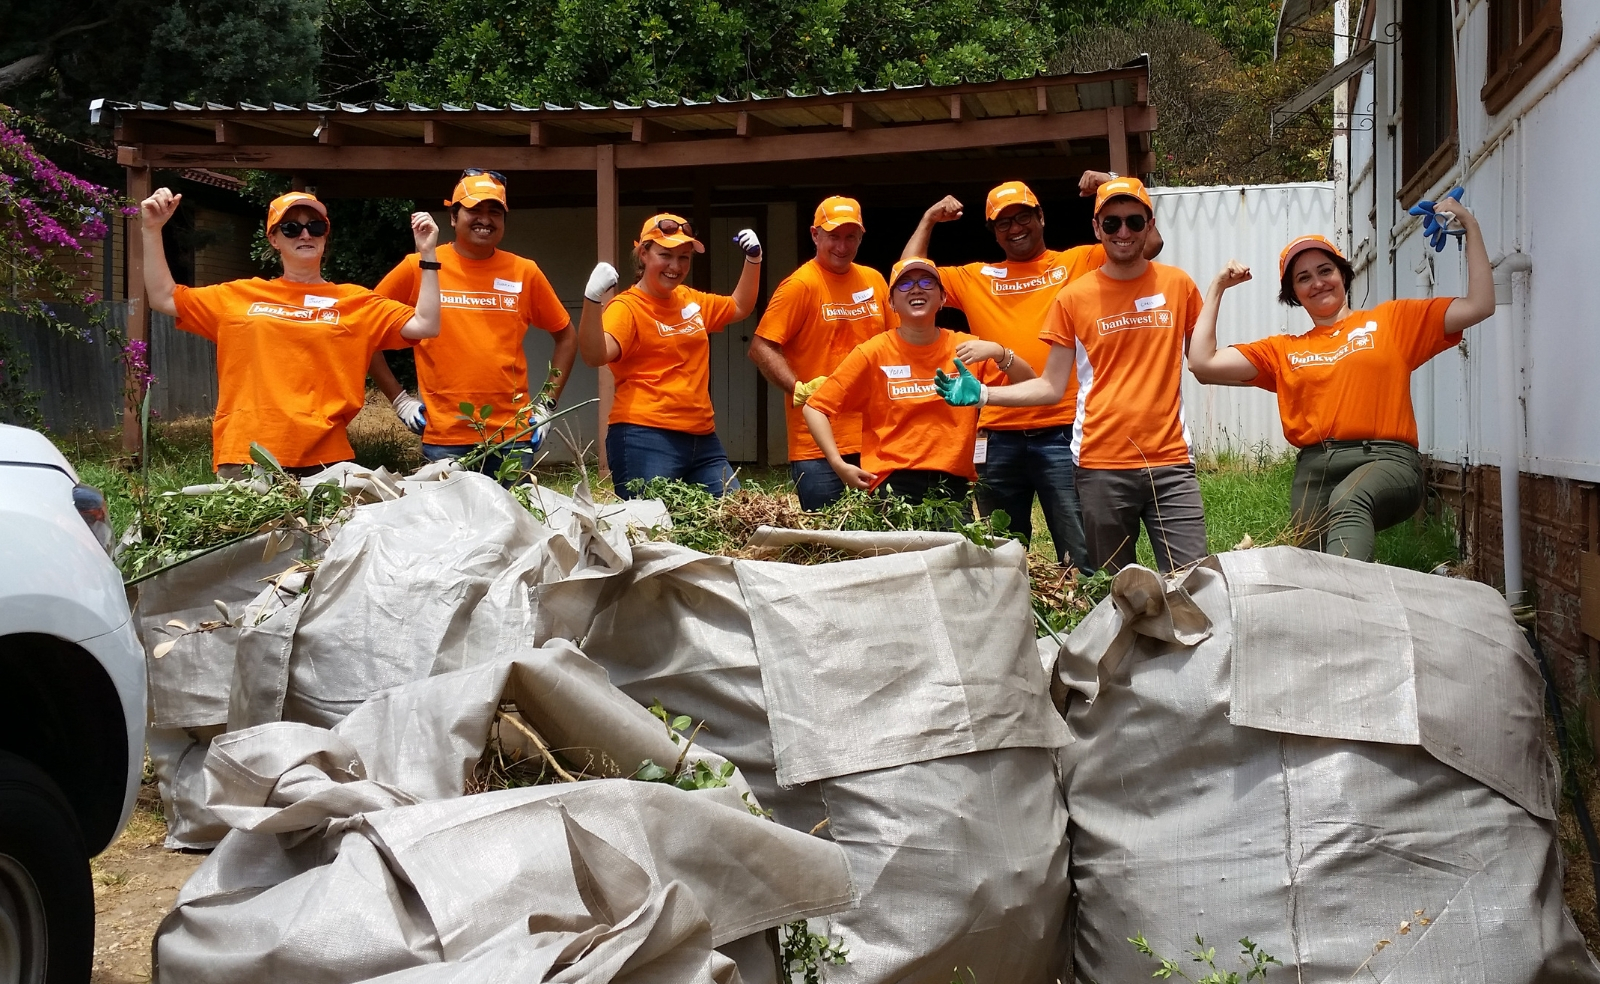 People with bankwest tshirts on cleaning up gardening